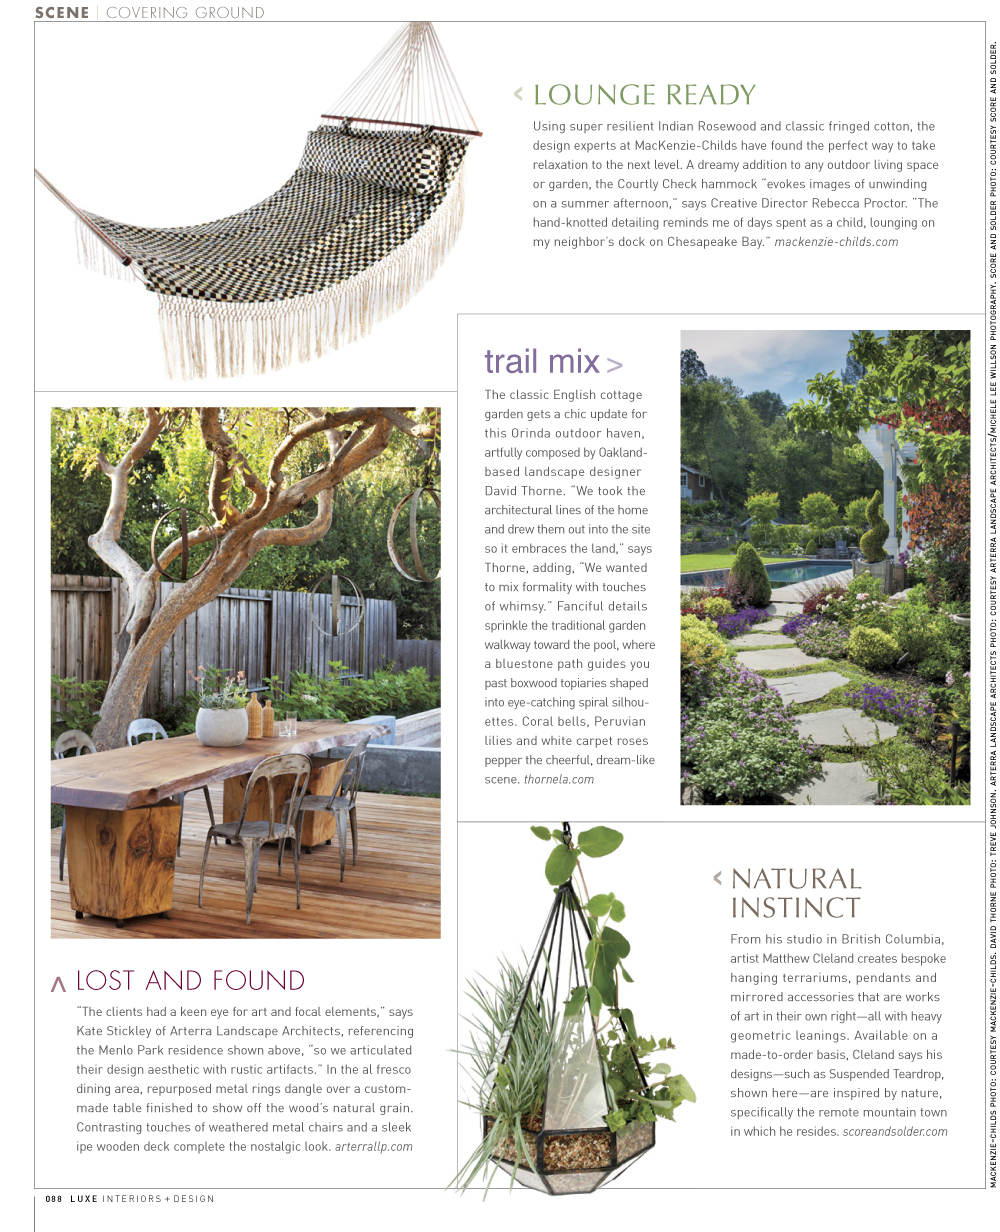 Luxe Magazine features a wood dining table crafted by a local artisan from Arterra's project The Gathering Table.